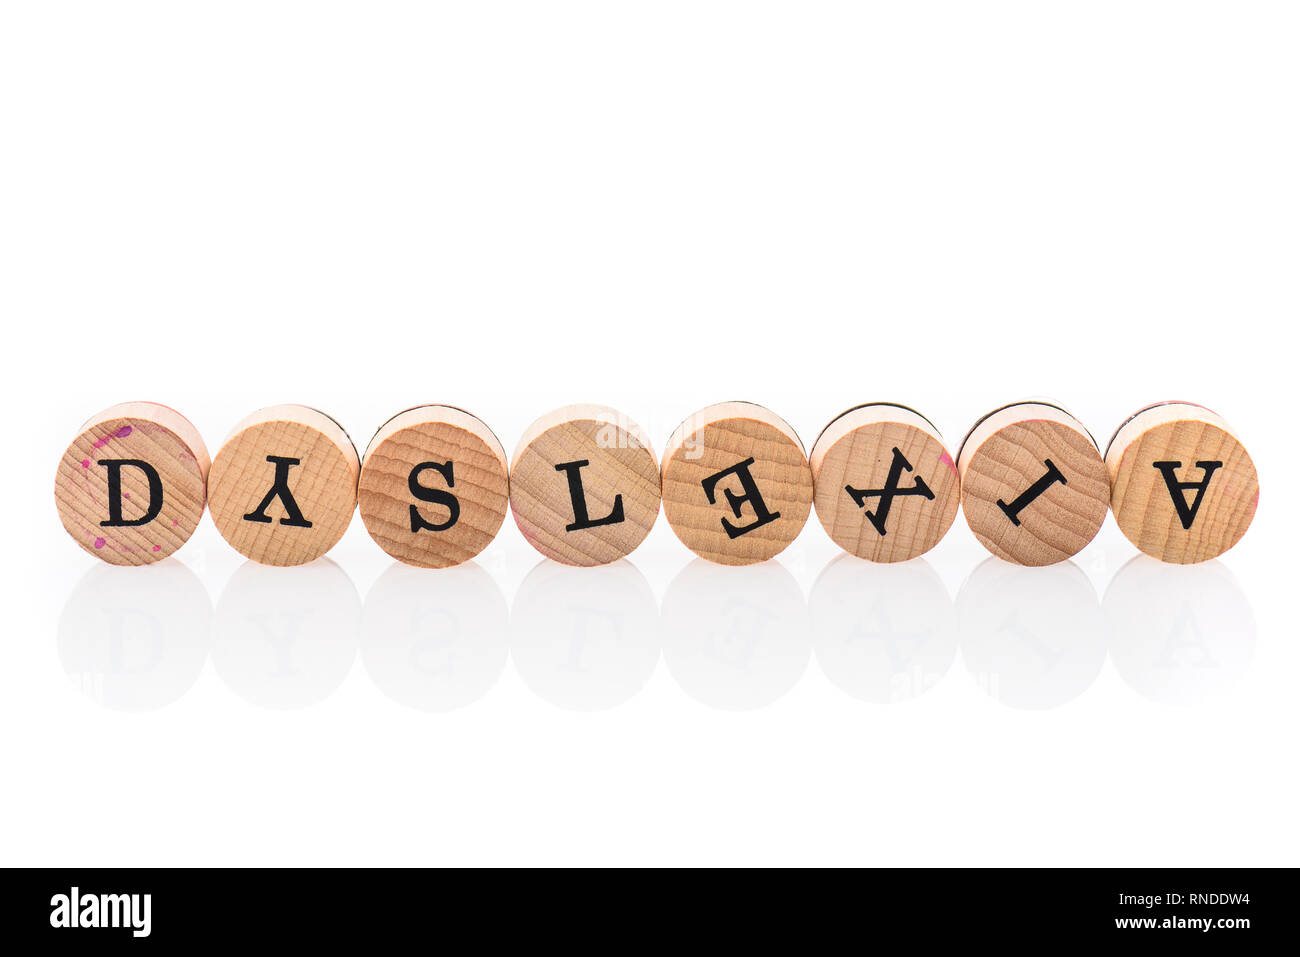 Word Dyslexia from circular wooden tiles with letters children toy. Concept of learning difficulty disorder spelled in children toy letters. - Stock Image